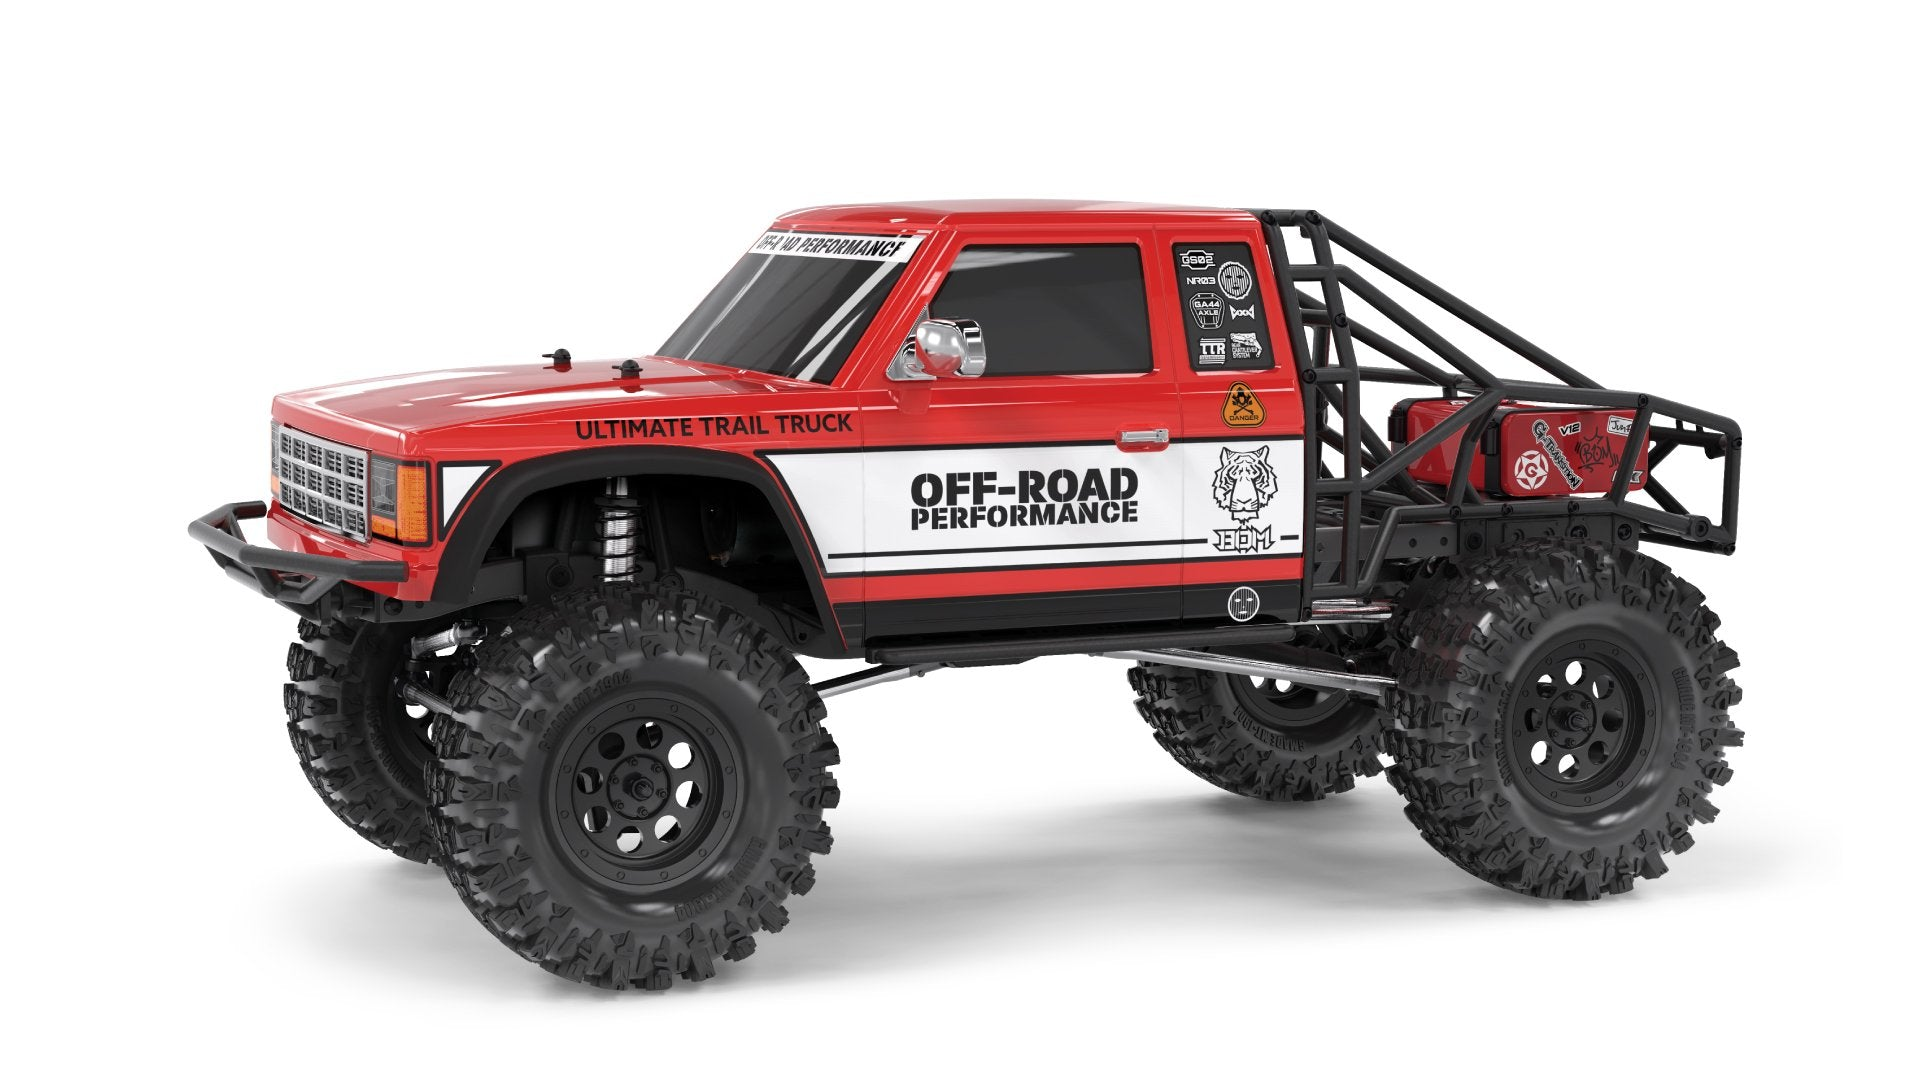 GMADE - 1/10 GS02 BOM 4WD ULTIMATE  SCALE TRAIL TRUCK KIT. Best Seller!